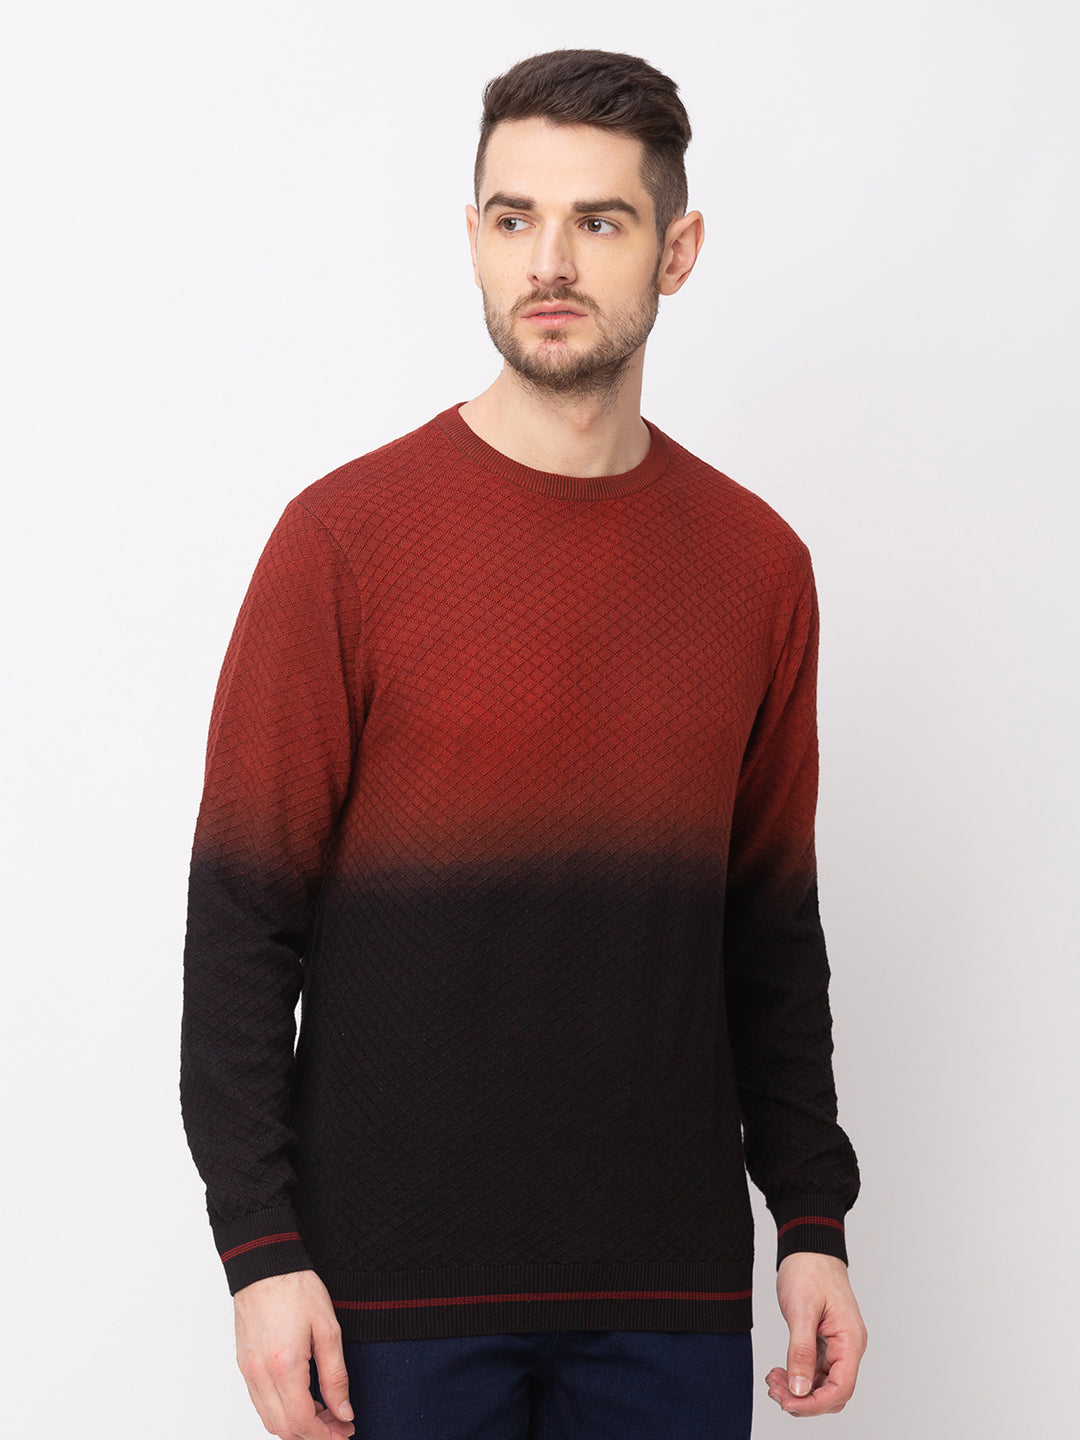 Globus Maroon Colourblocked Pullover Sweater-1